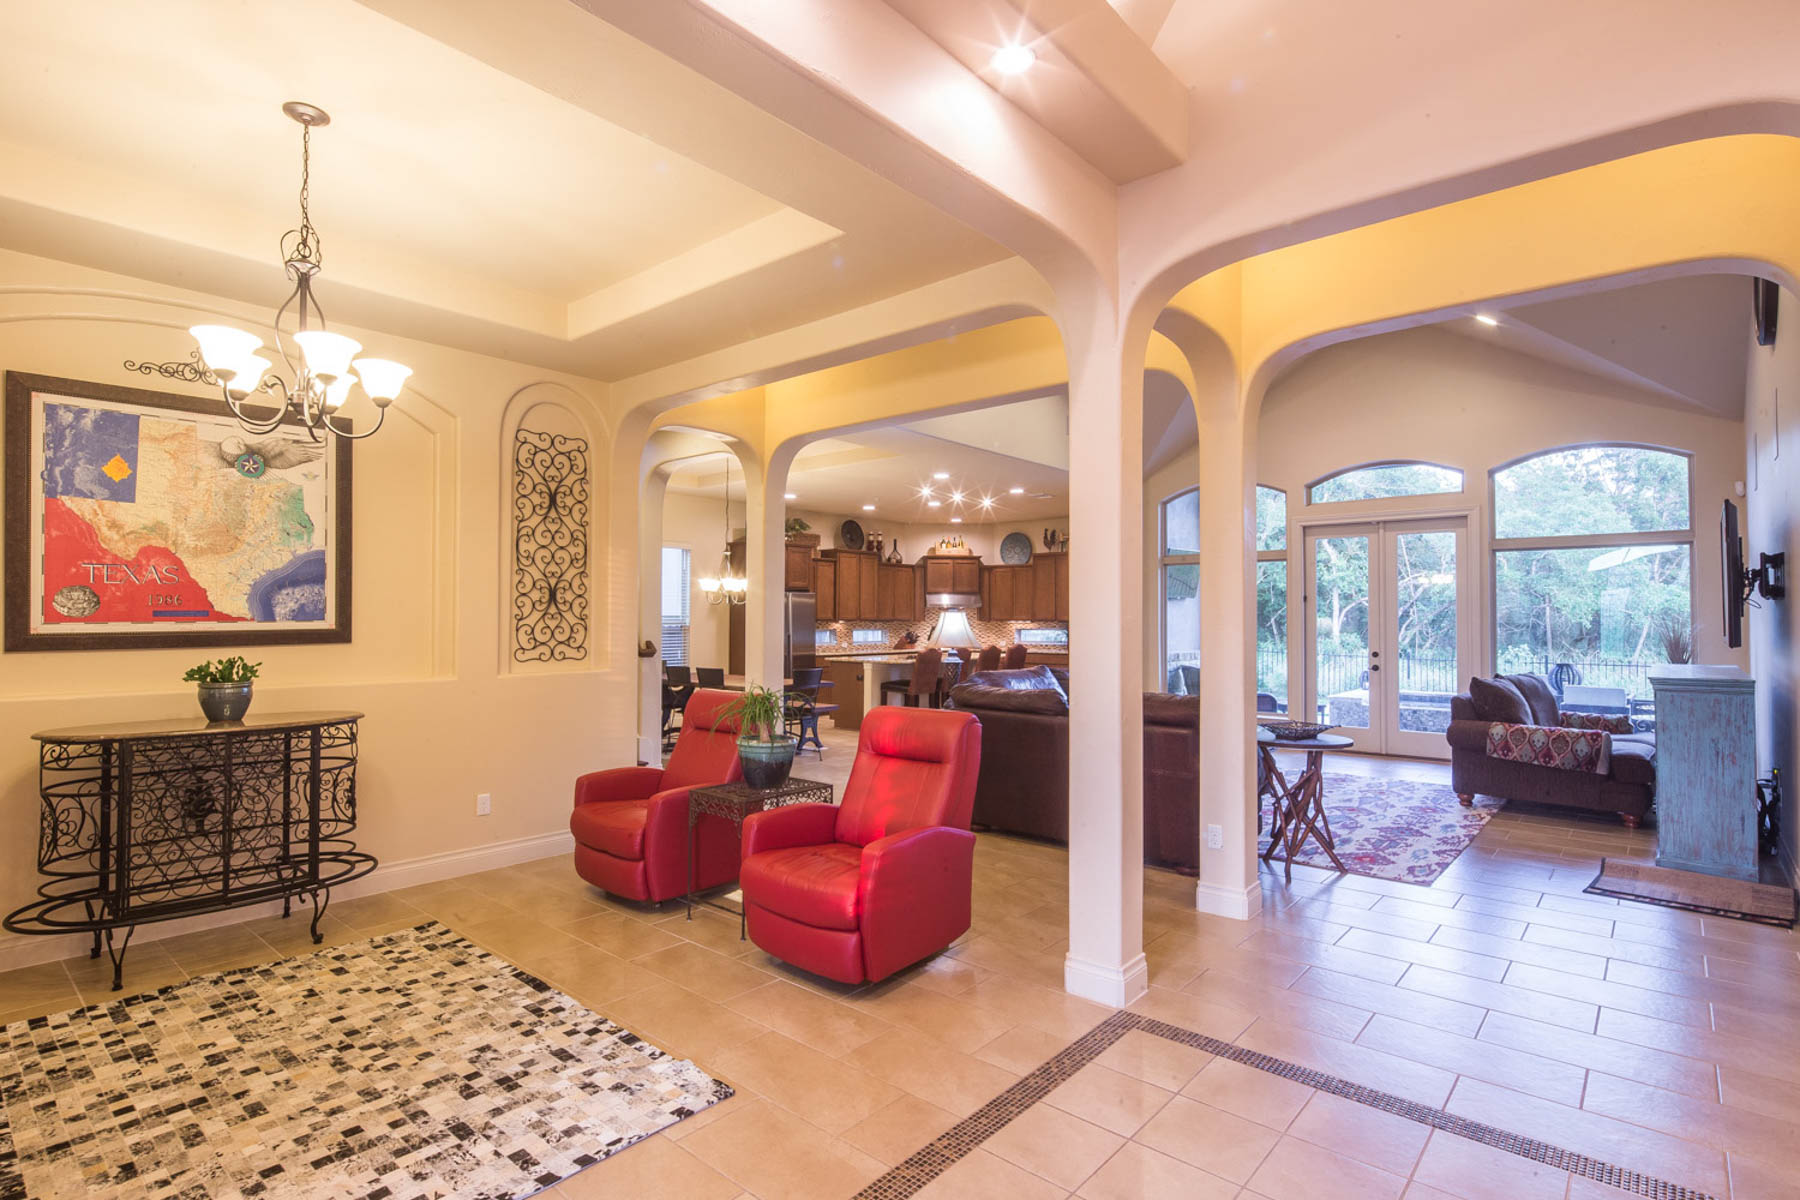 Additional photo for property listing at Relax in Paradise with This Custom Home 2453 Kookaburra Dr New Braunfels, Texas 78132 United States